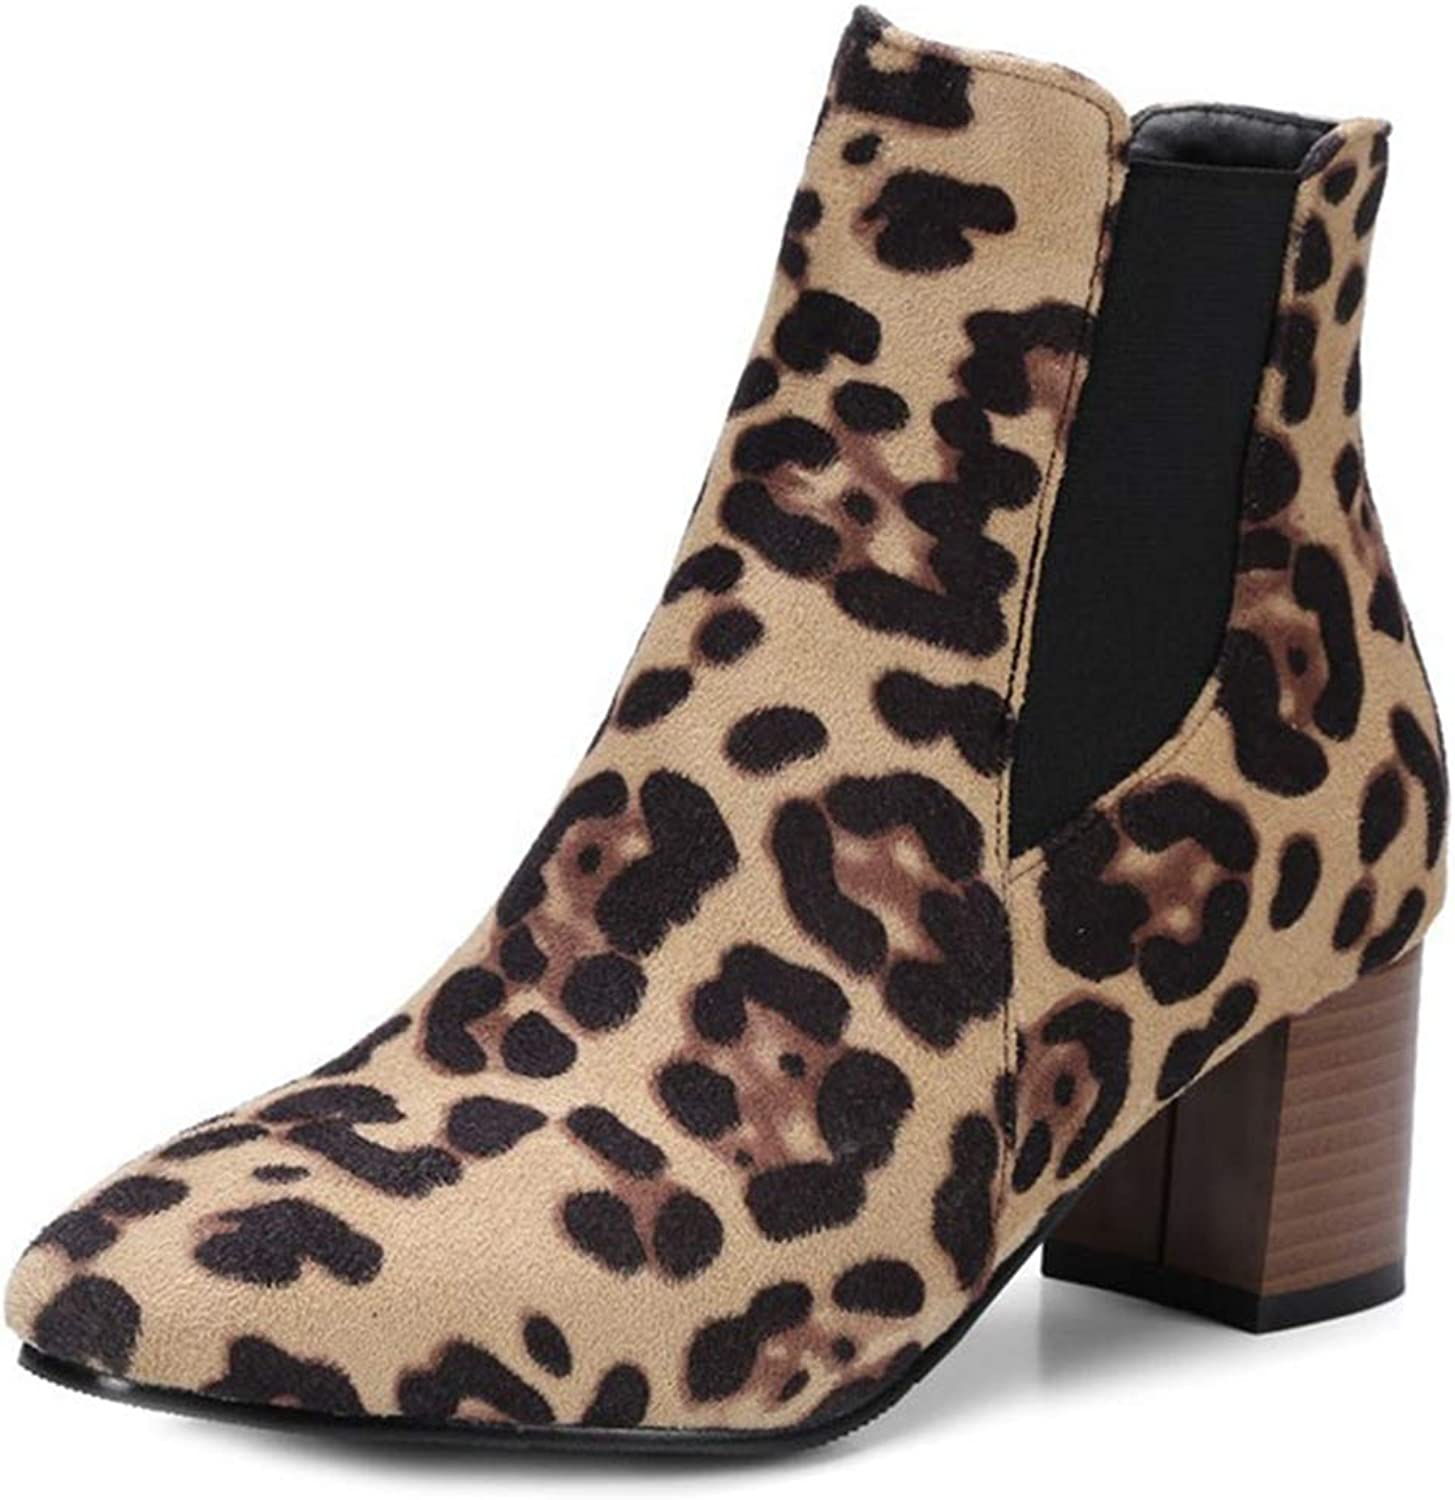 GIY Women's Leopard Suede Stacked Block Heel Ankle Boots Chunky Platform Bootie Elastic Comfy Short Boot